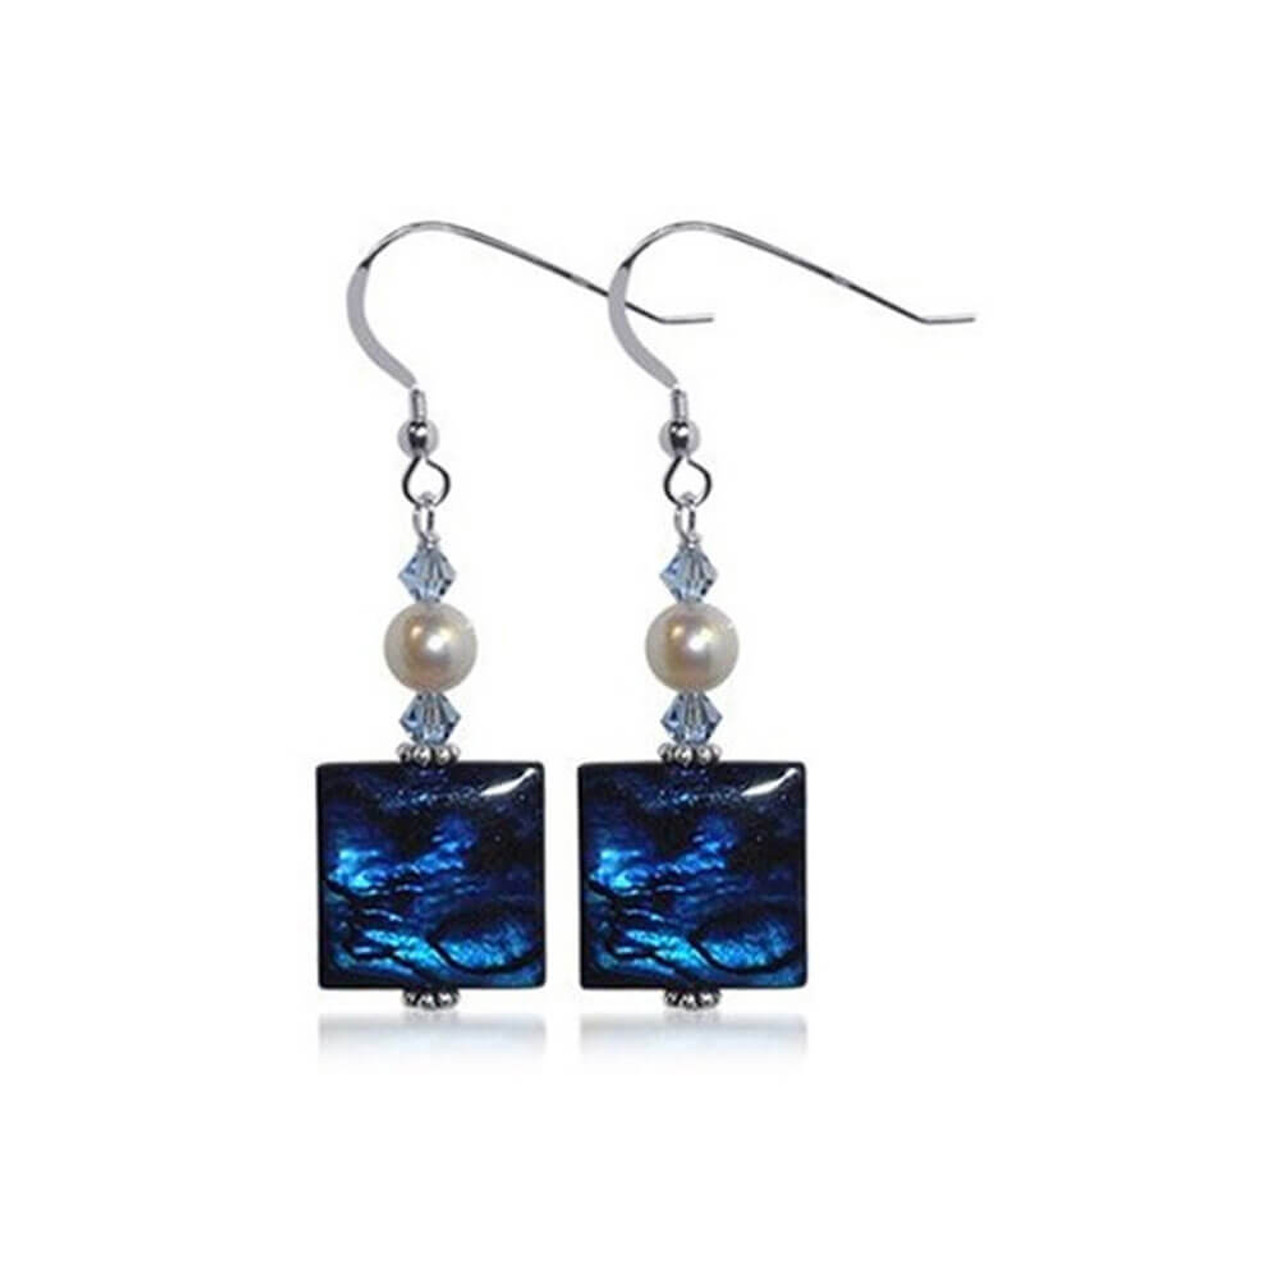 Sterling Silver Assembled Dyed Abalone Drop Earrings Made with Swarovski Elements